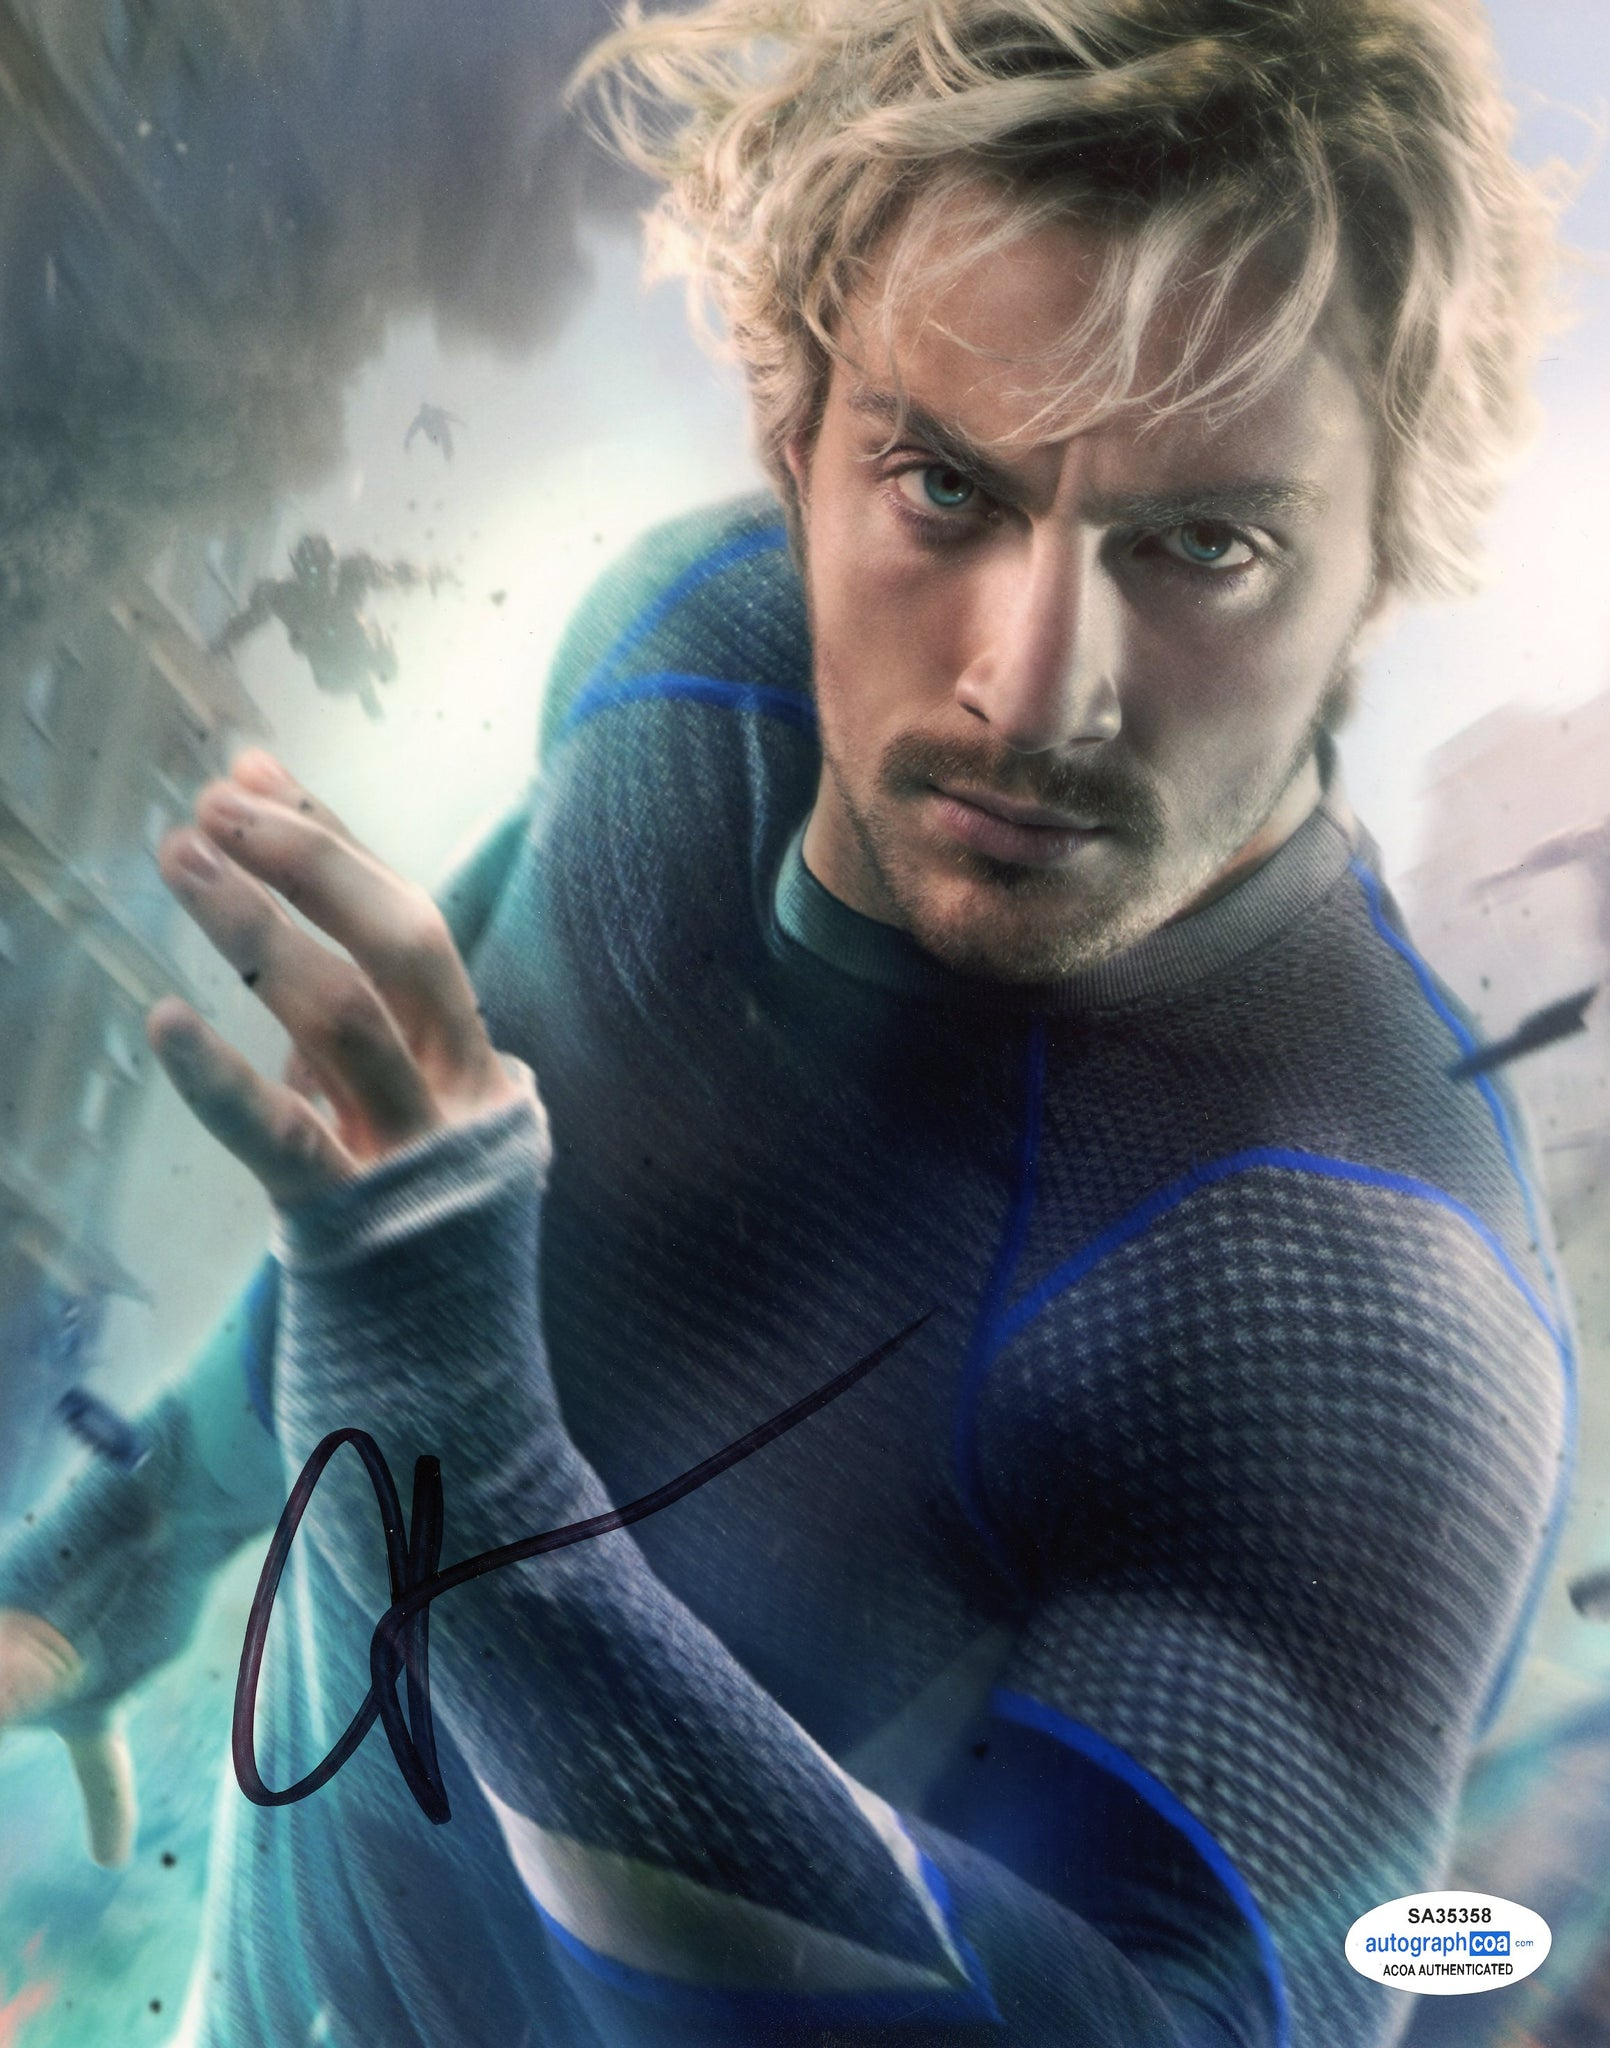 Aaron Taylor Johnson Avengers Quicksilver Signed Autograph 8x10 Photo ACOA #2 - Outlaw Hobbies Authentic Autographs